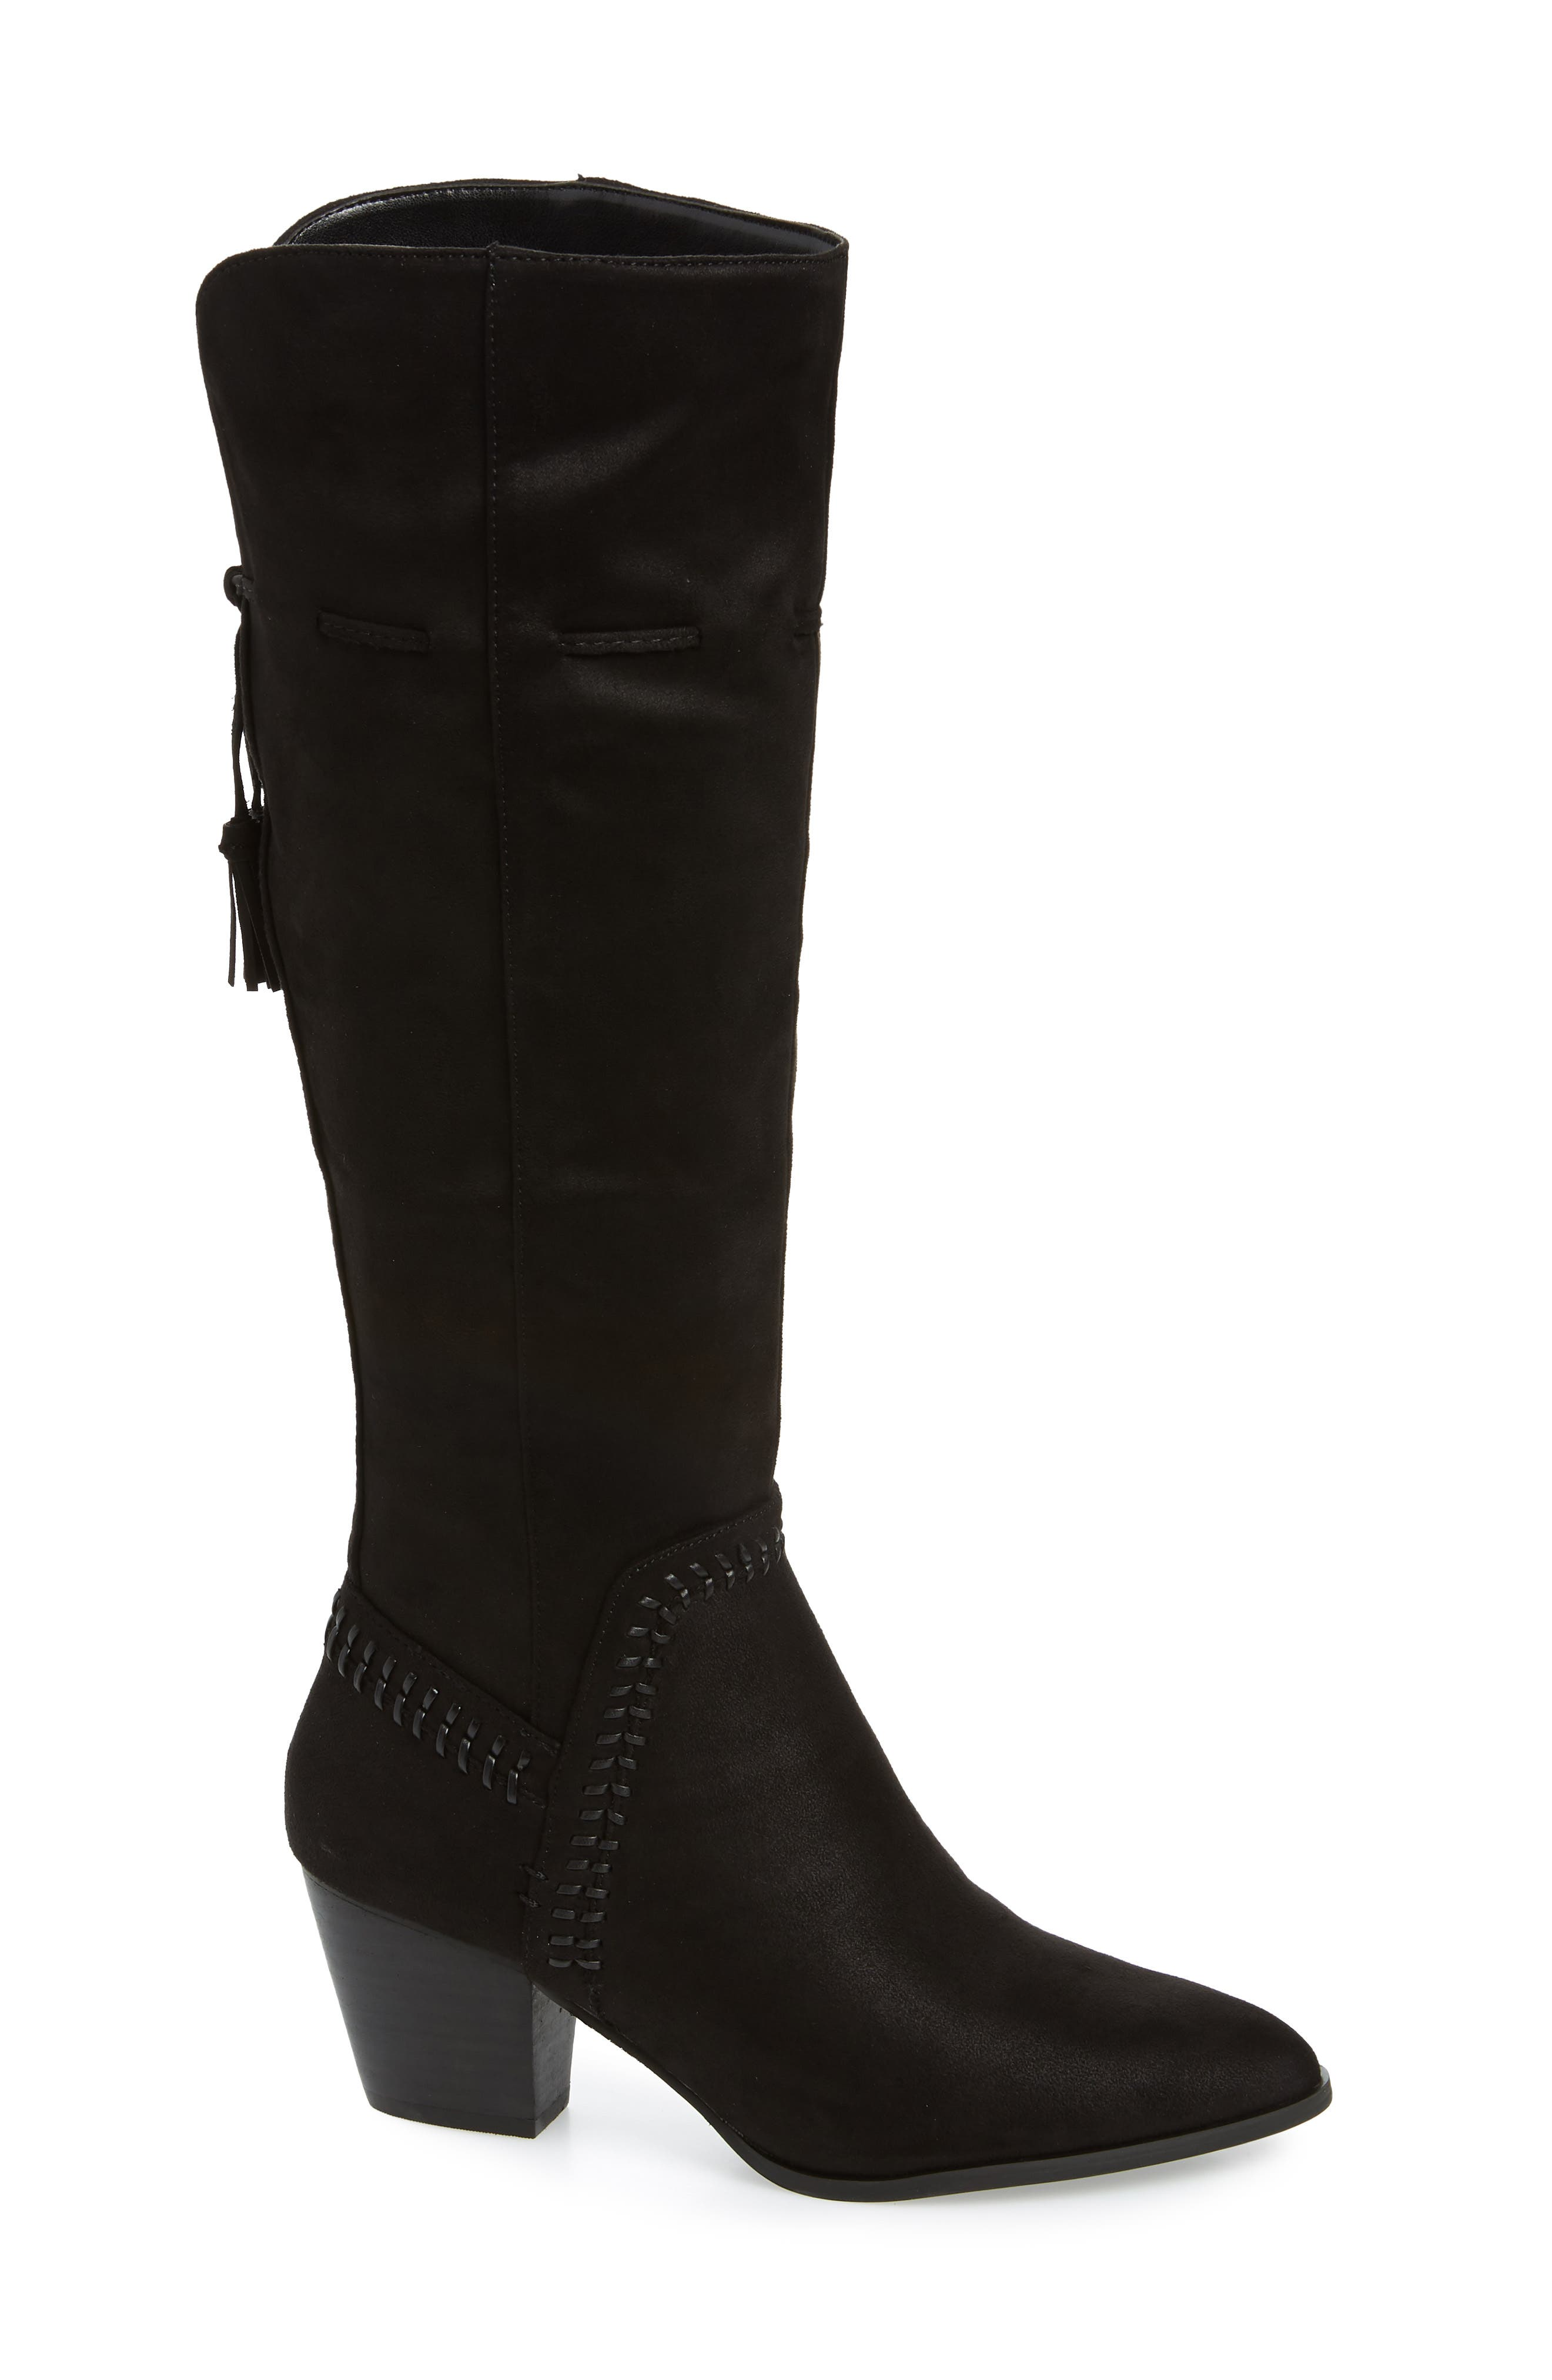 Eleanor II Knee High Boot,                             Main thumbnail 1, color,                             BLACK